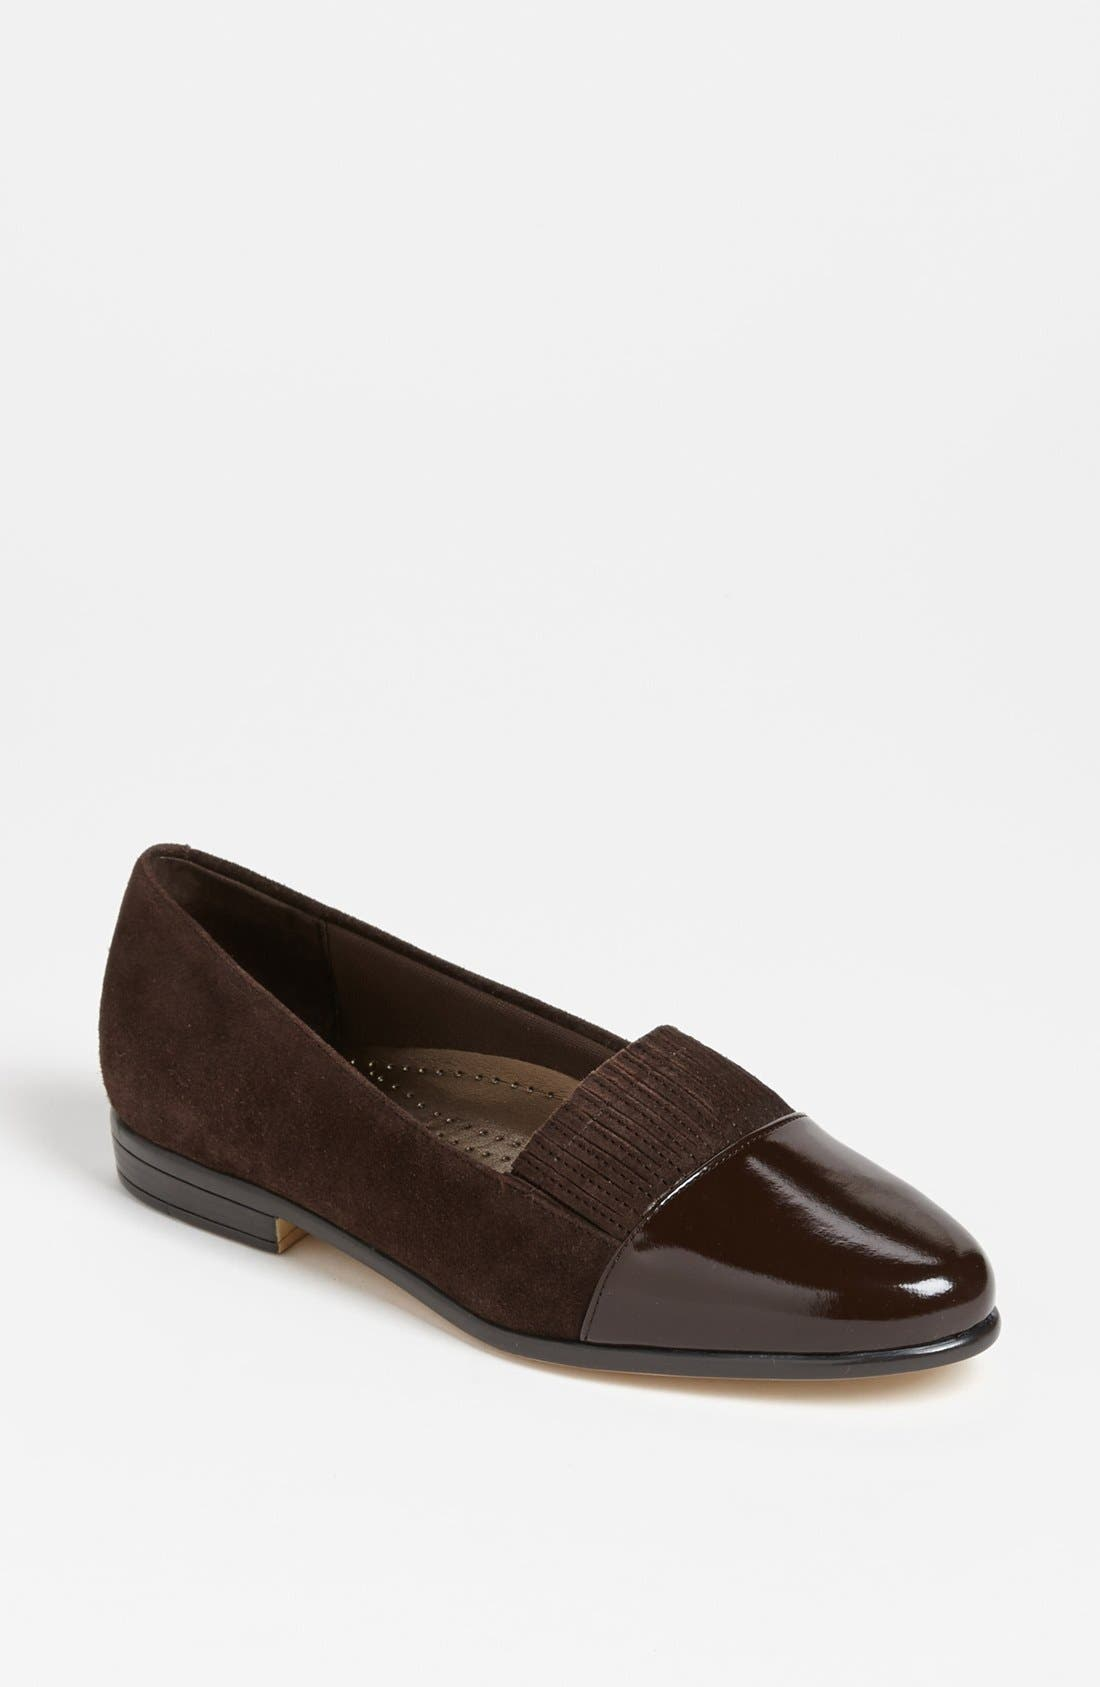 Main Image - Trotters 'Laurie' Flat